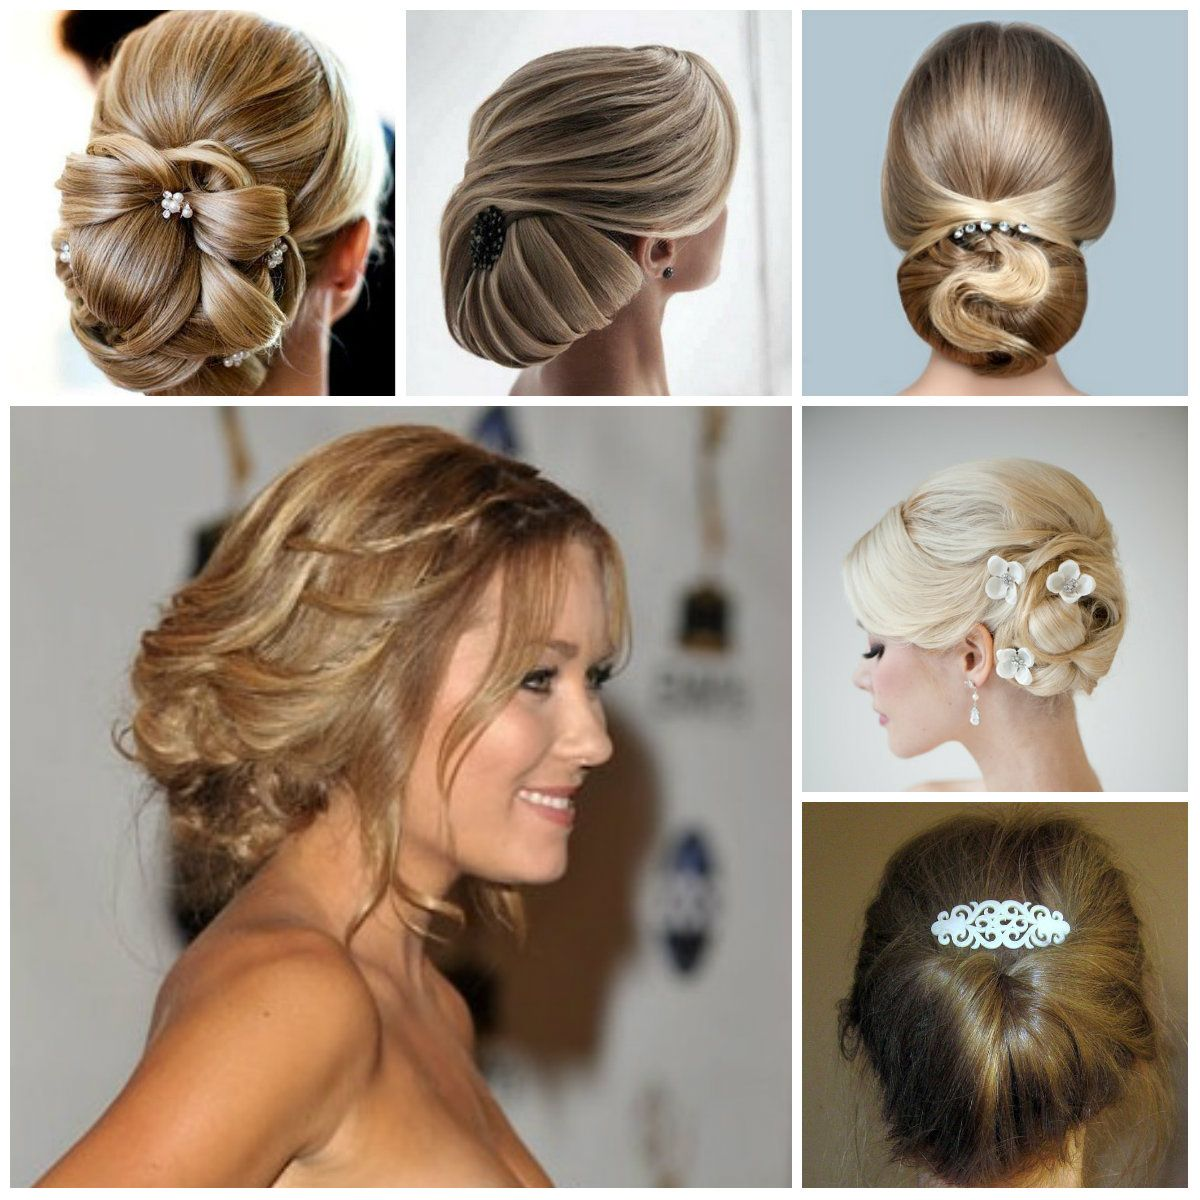 hottest chignon hairstyles 2017 | haircuts, hairstyles 2017 and